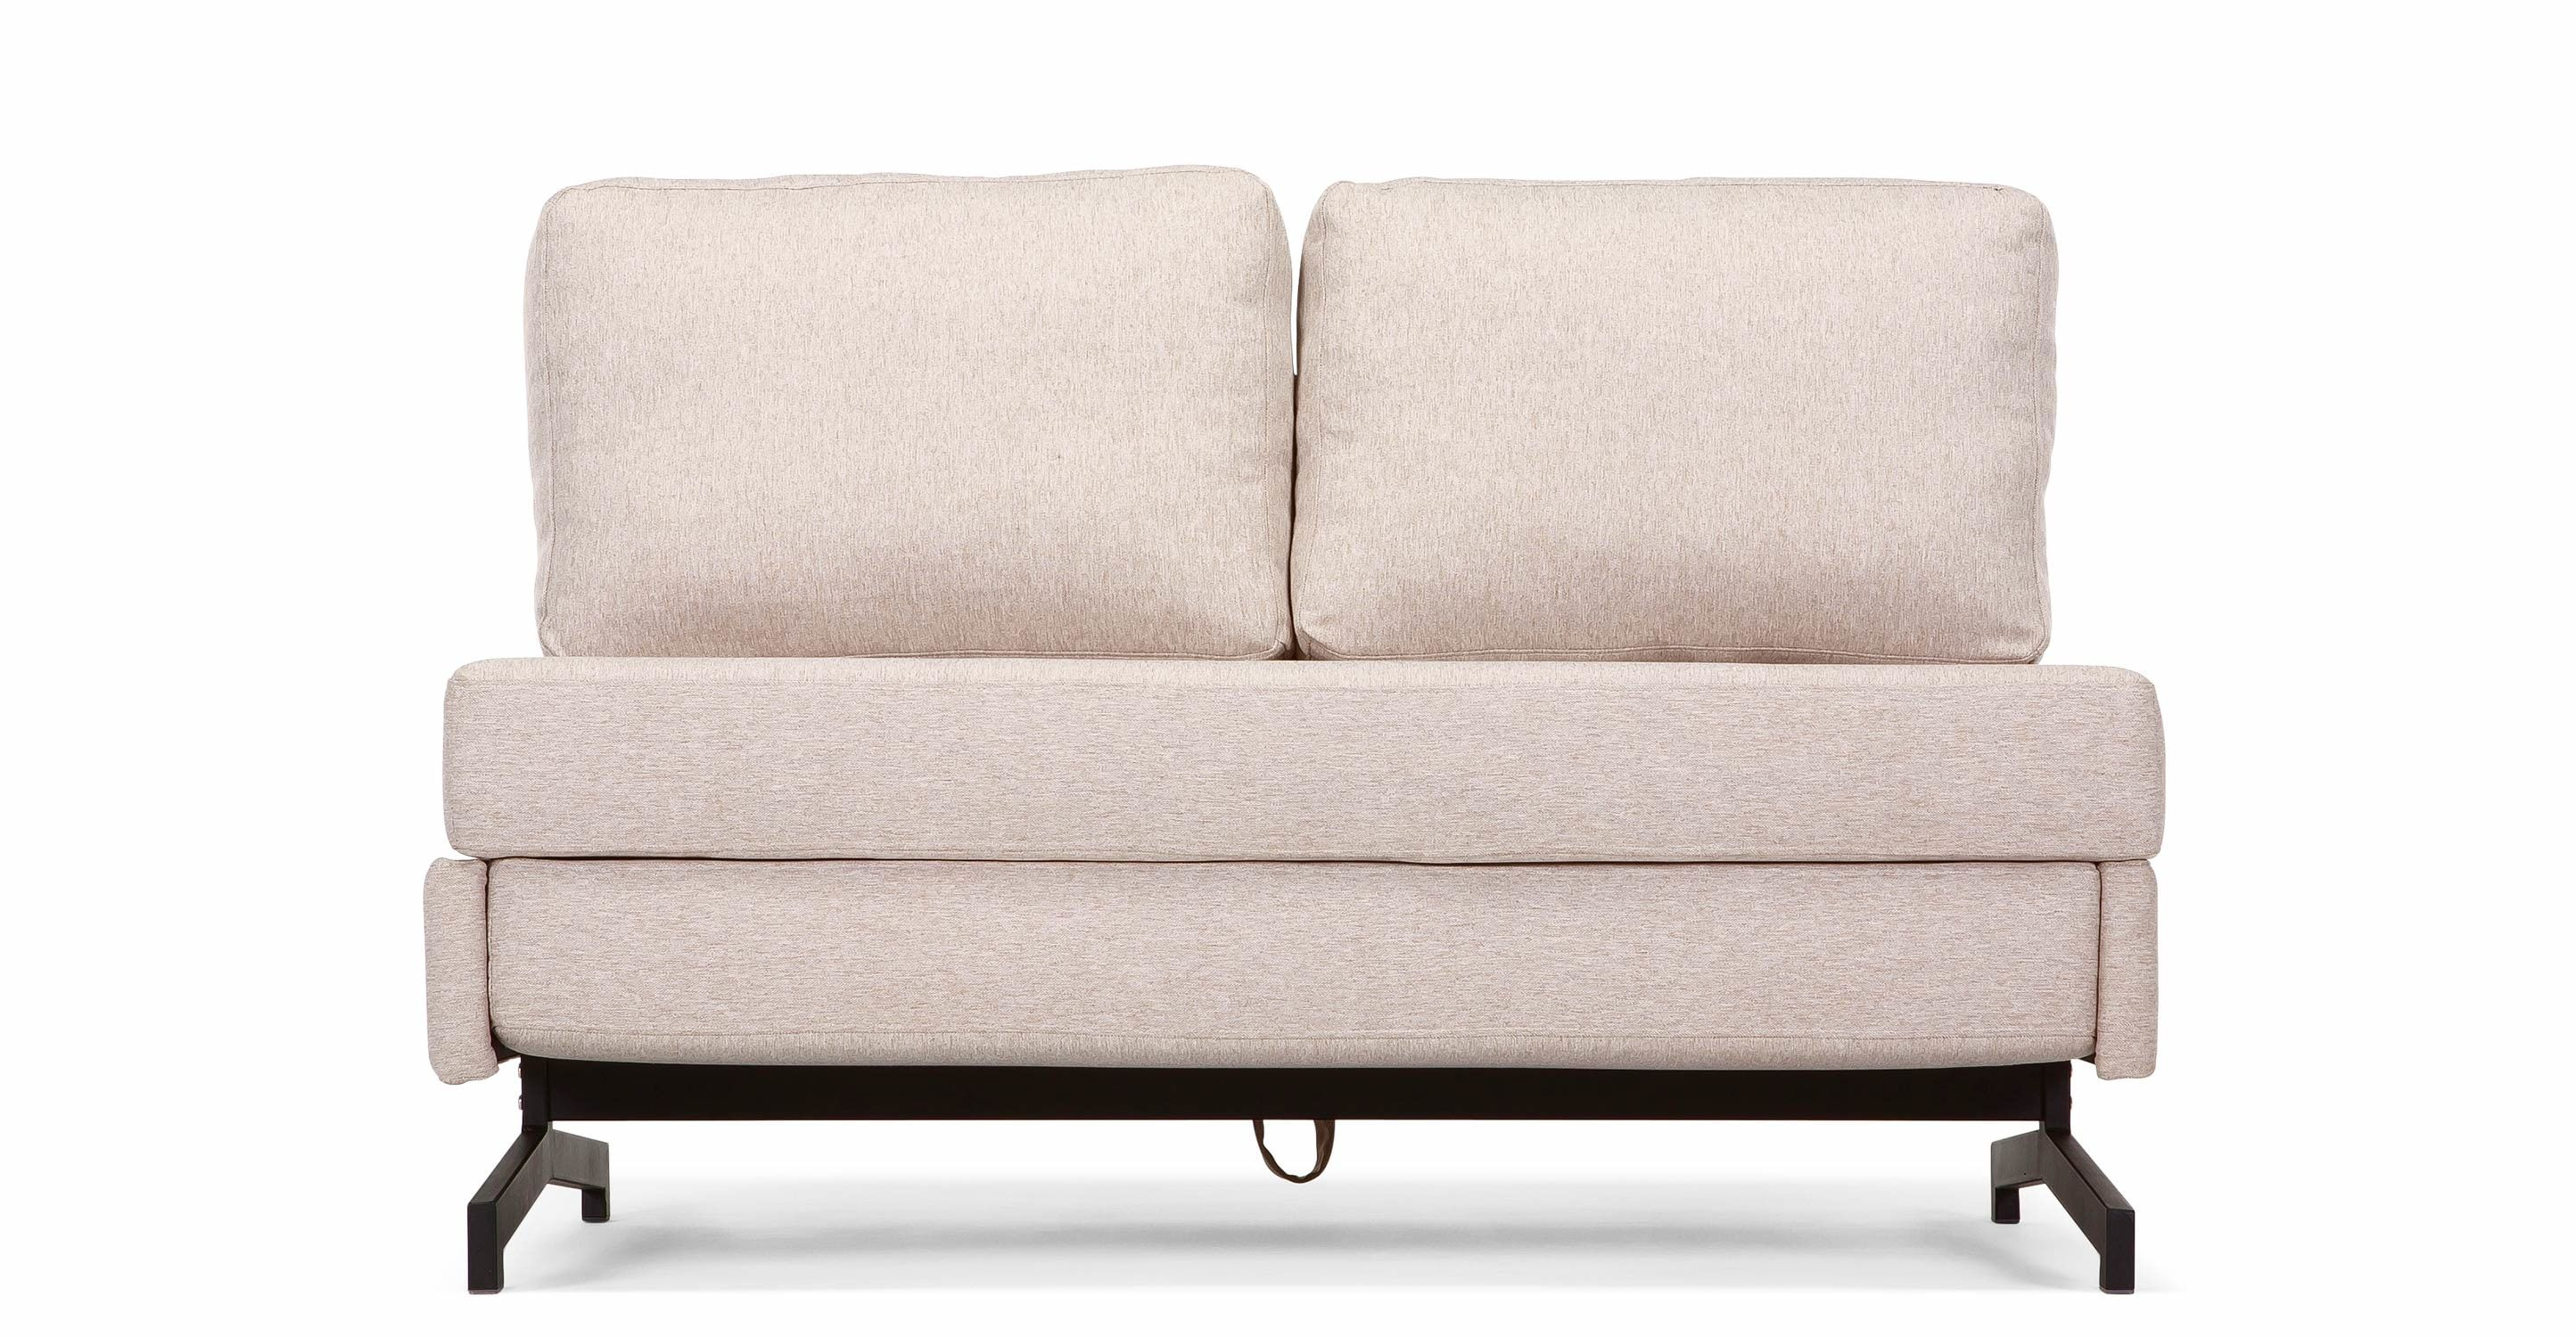 Be Guest Ready With The No Nonsense Design Of Motti Armless Sofa Bed In Pipit